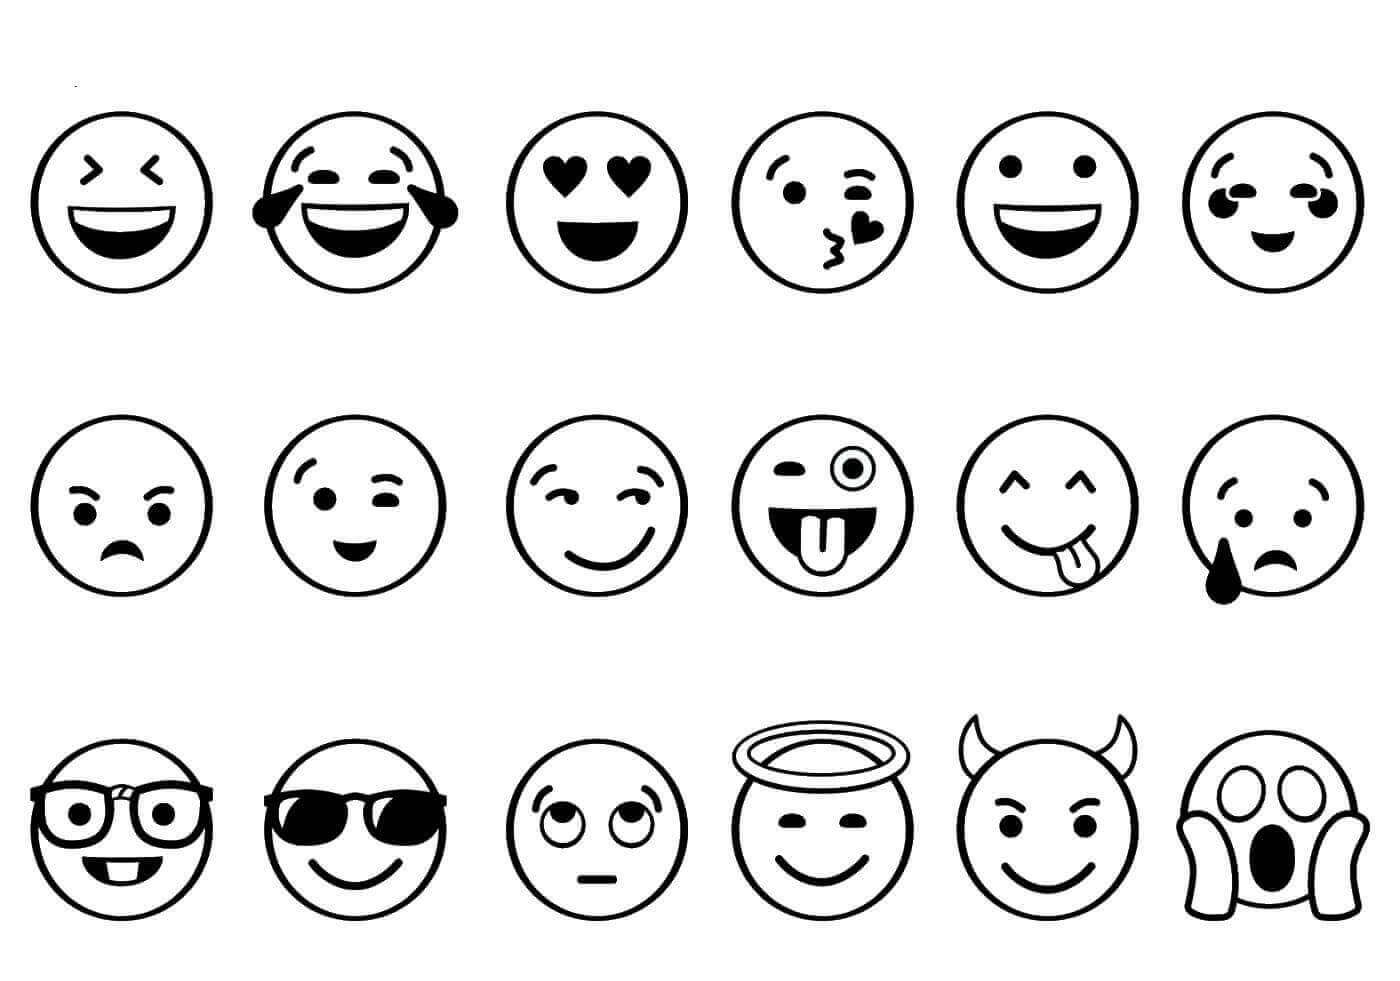 Emoji Coloring Pages Free Printable | Sped | Pinterest | Emoji - Free Printable Emoji Faces